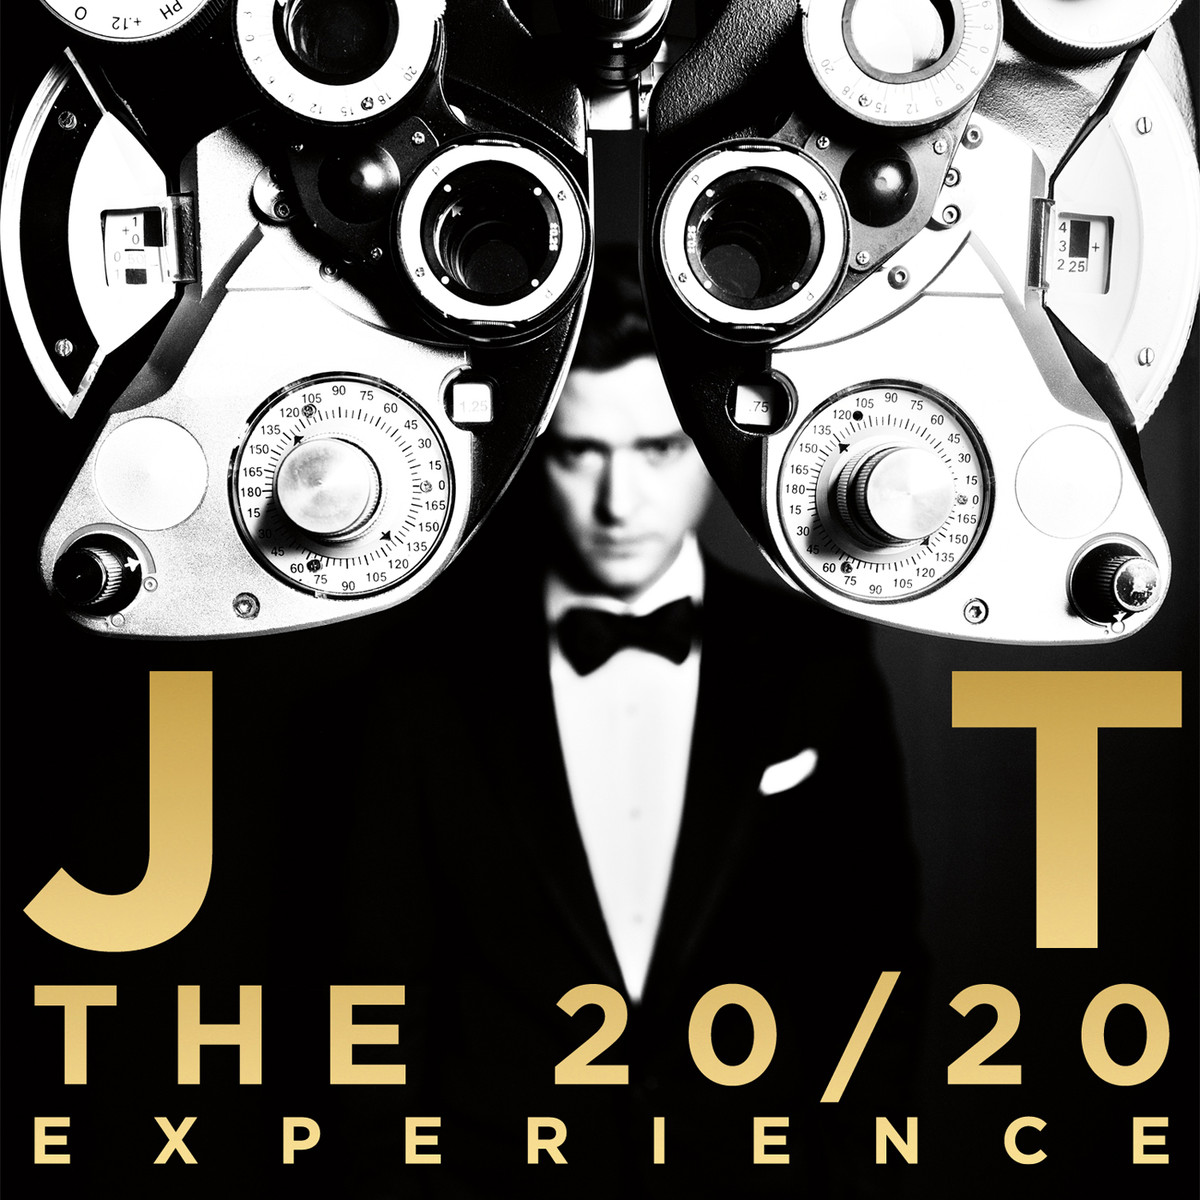 Futuresex Lovesounds Deluxe Version Justin Timberlake: Exploring All Frequencies